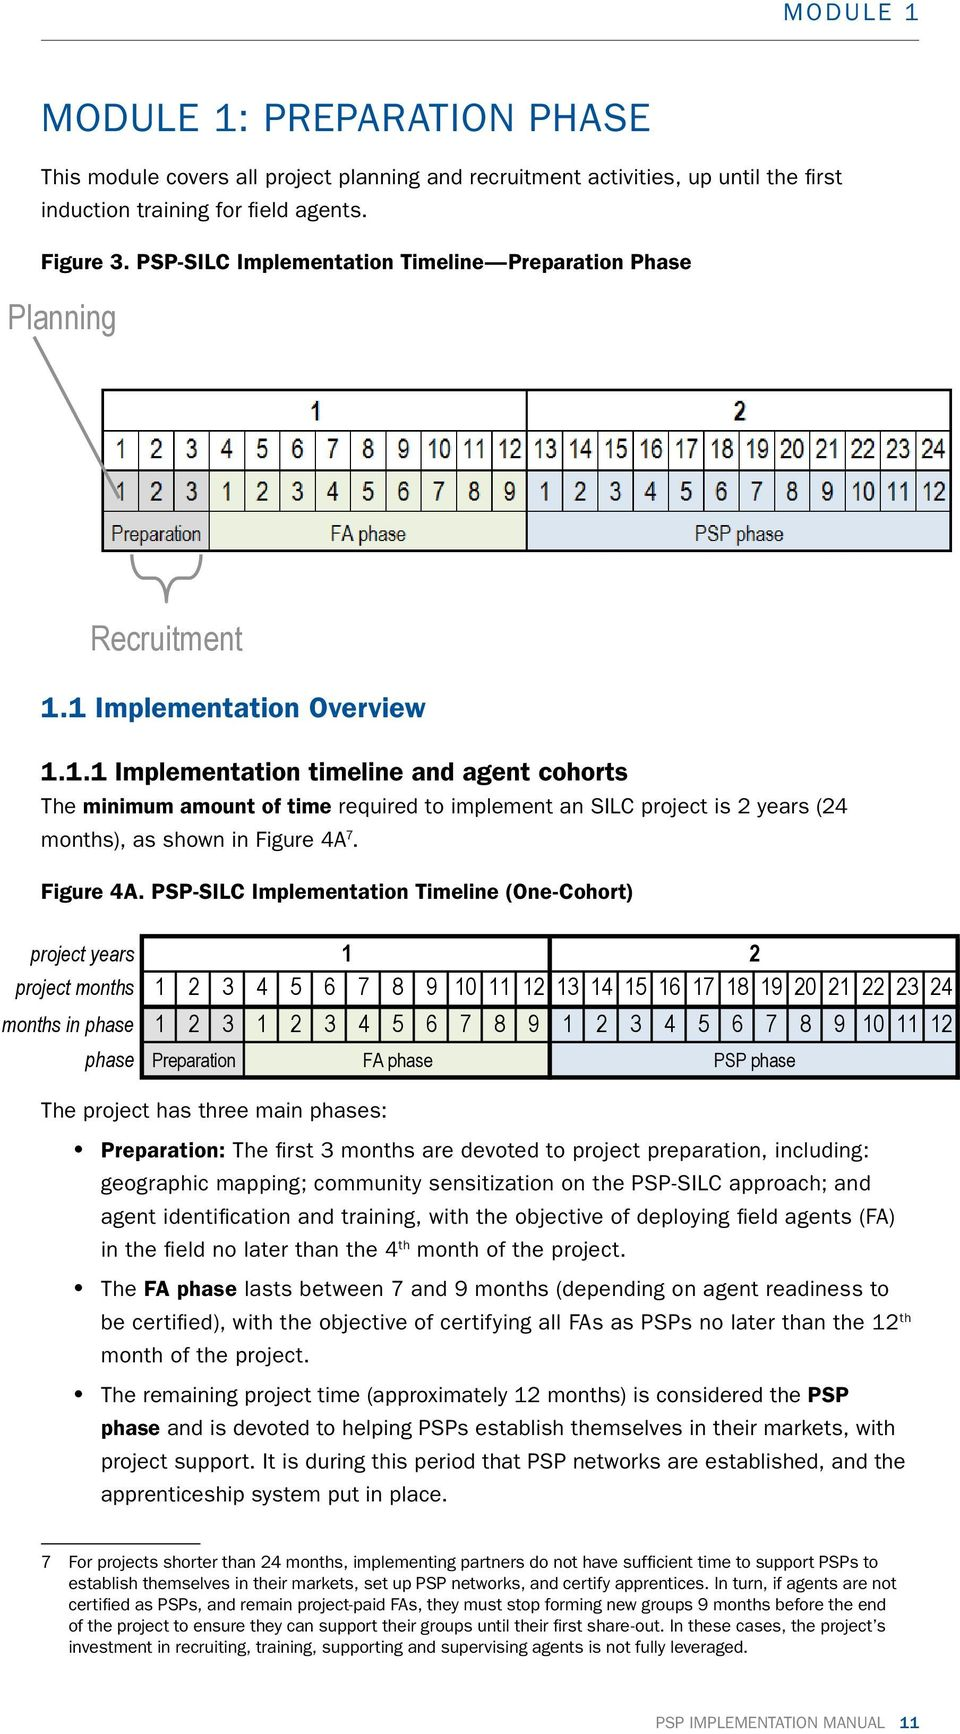 1 Implementation Overview 1.1.1 Implementation timeline and agent cohorts The minimum amount of time required to implement an SILC project is 2 years (24 months), as shown in Figure 4A